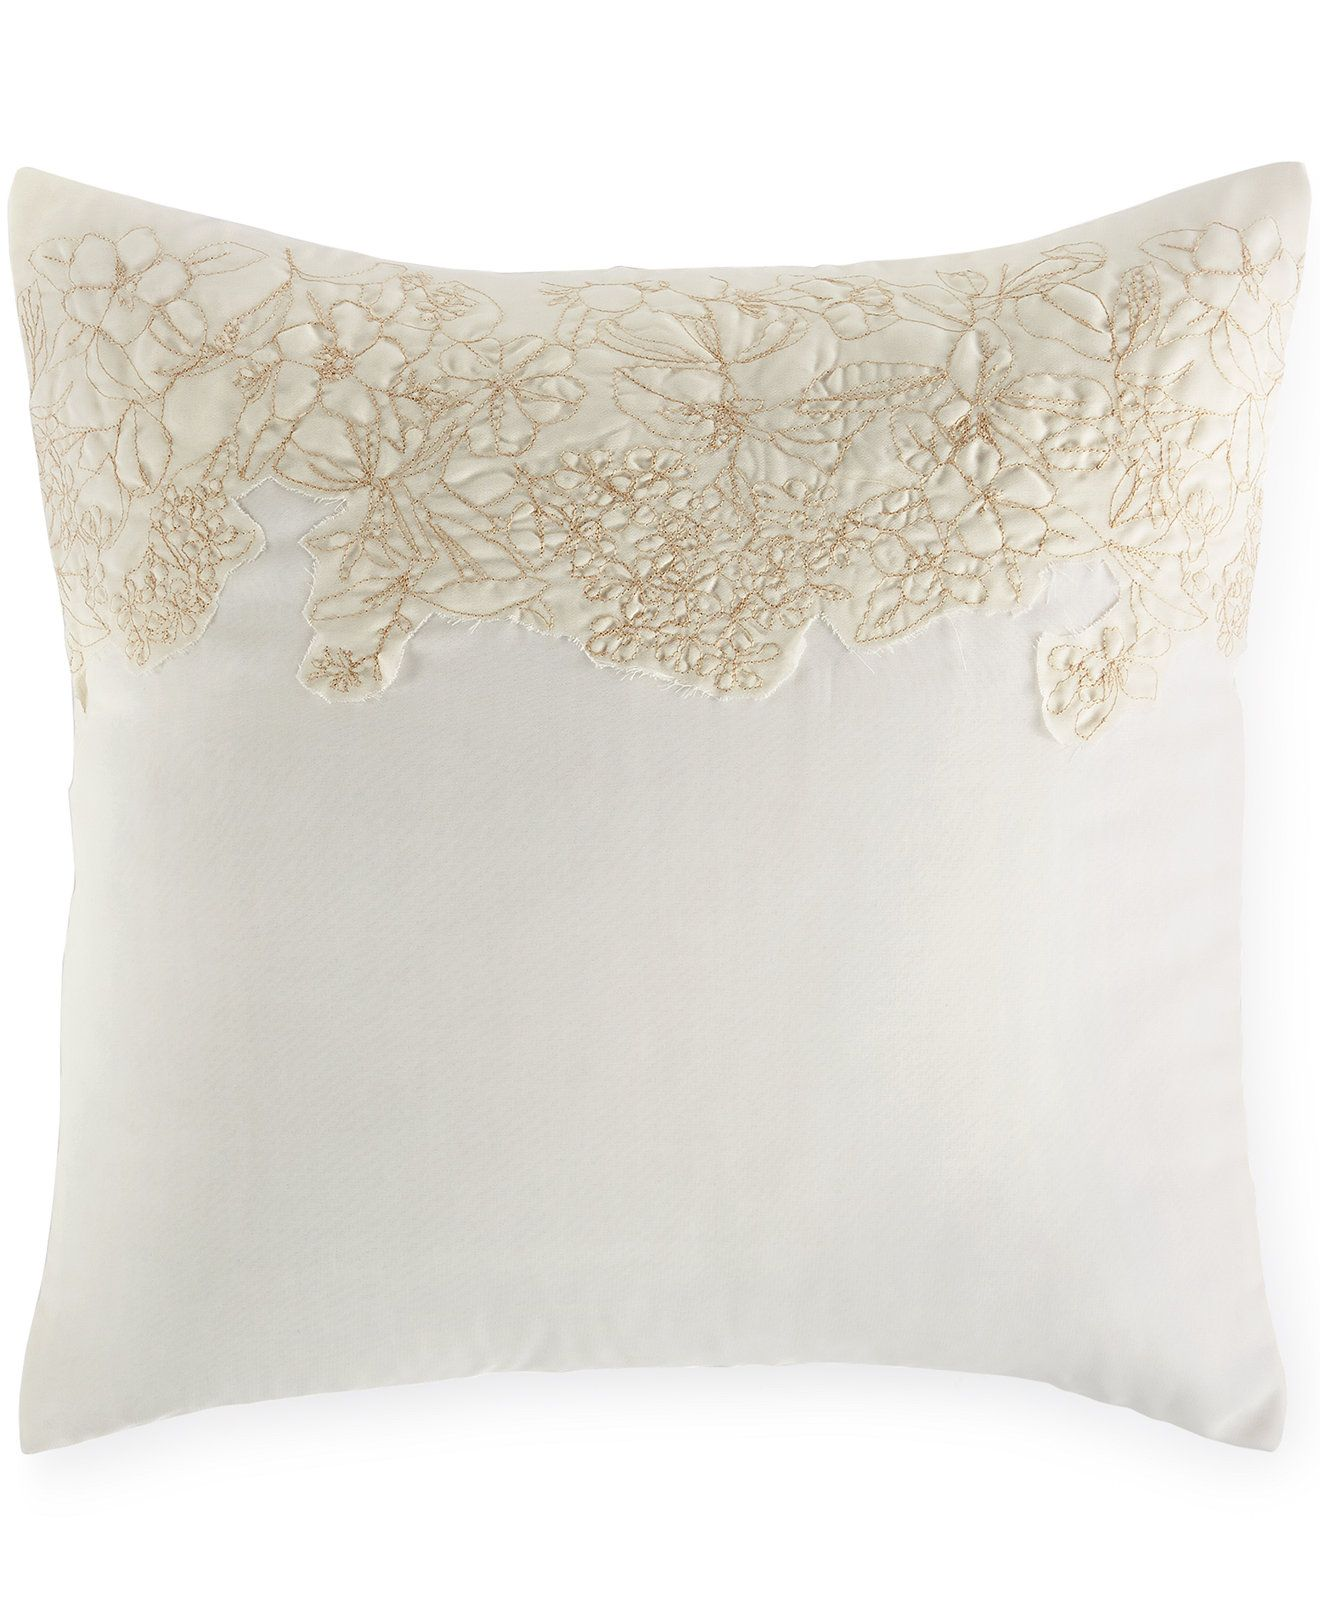 "Macy's Decorative Pillows Best Calvin Klein Embroidered Flora 18"" Square Decorative Pillow Design Decoration"